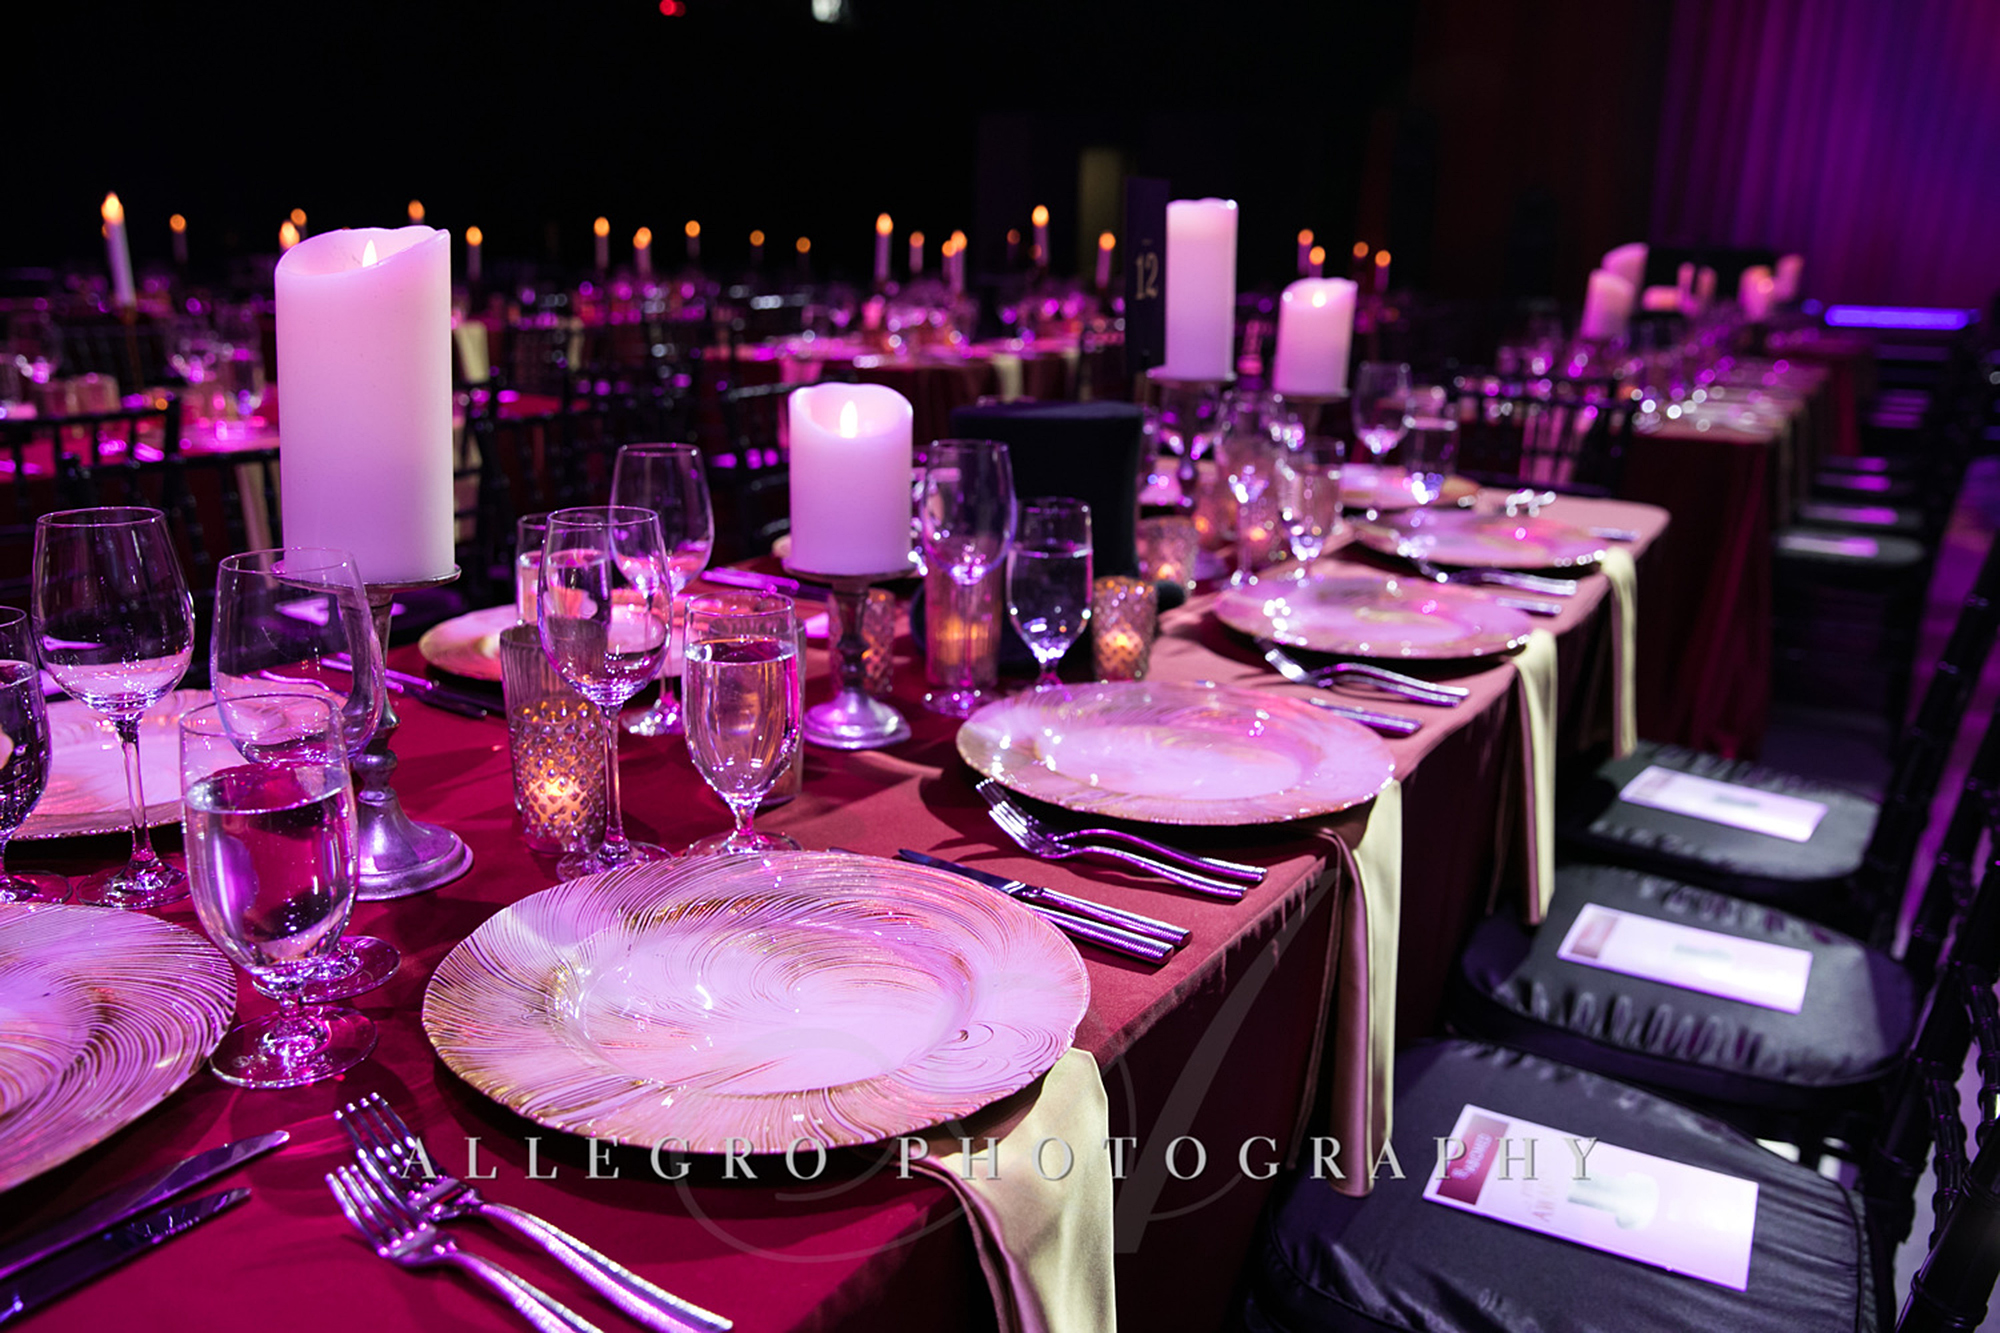 01_Corporate Awards Dinner Details_AE Events.jpg